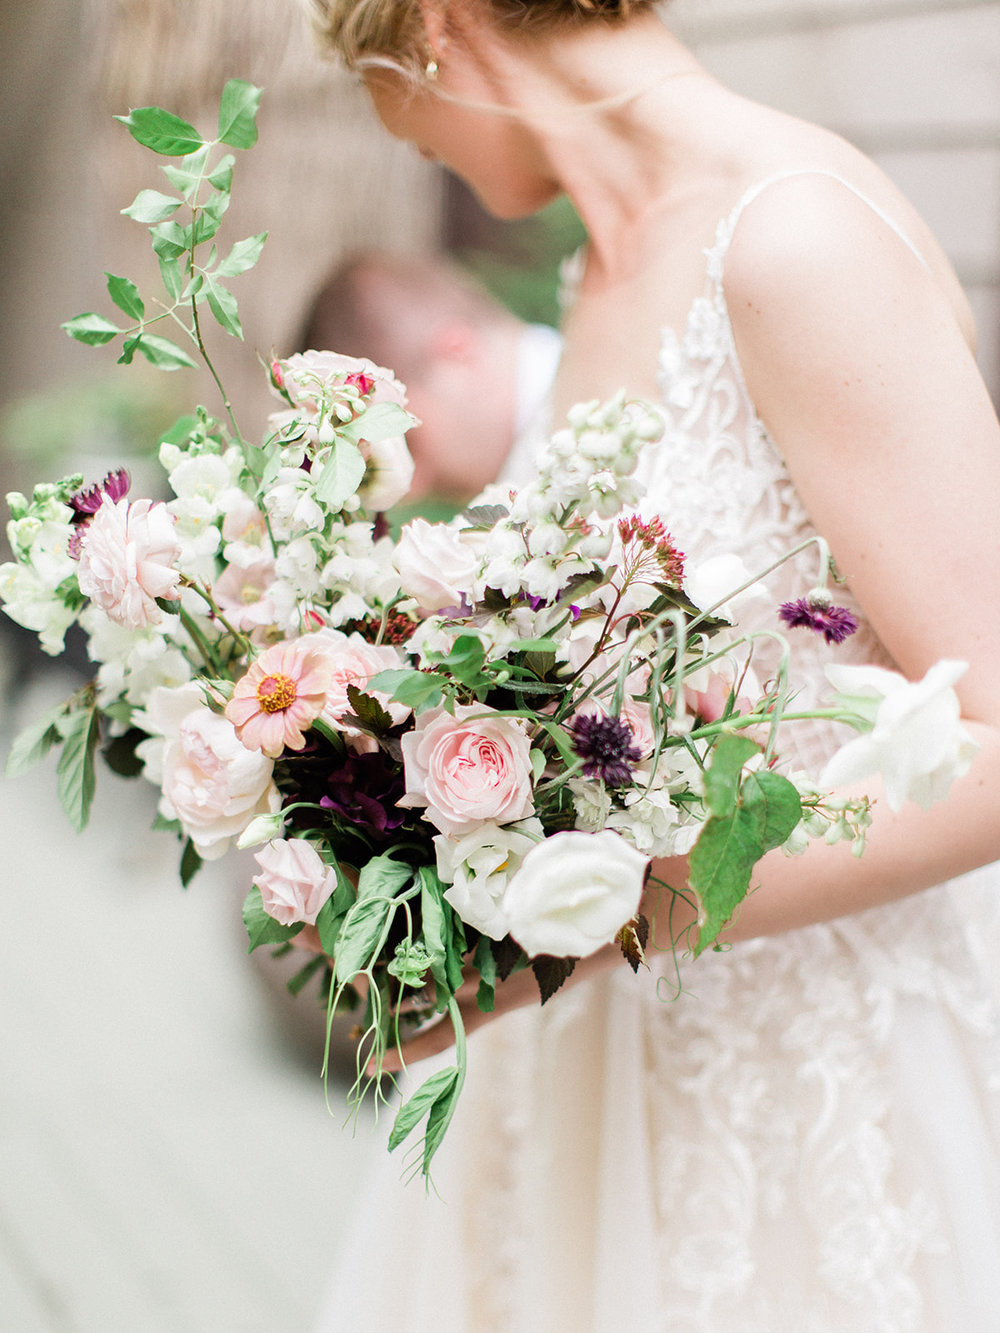 wild north flowers - We are a small, independent flower studio located in downtown Toronto using 100% Ontario-Grown flowers. Our design style is natural and elegant, with that